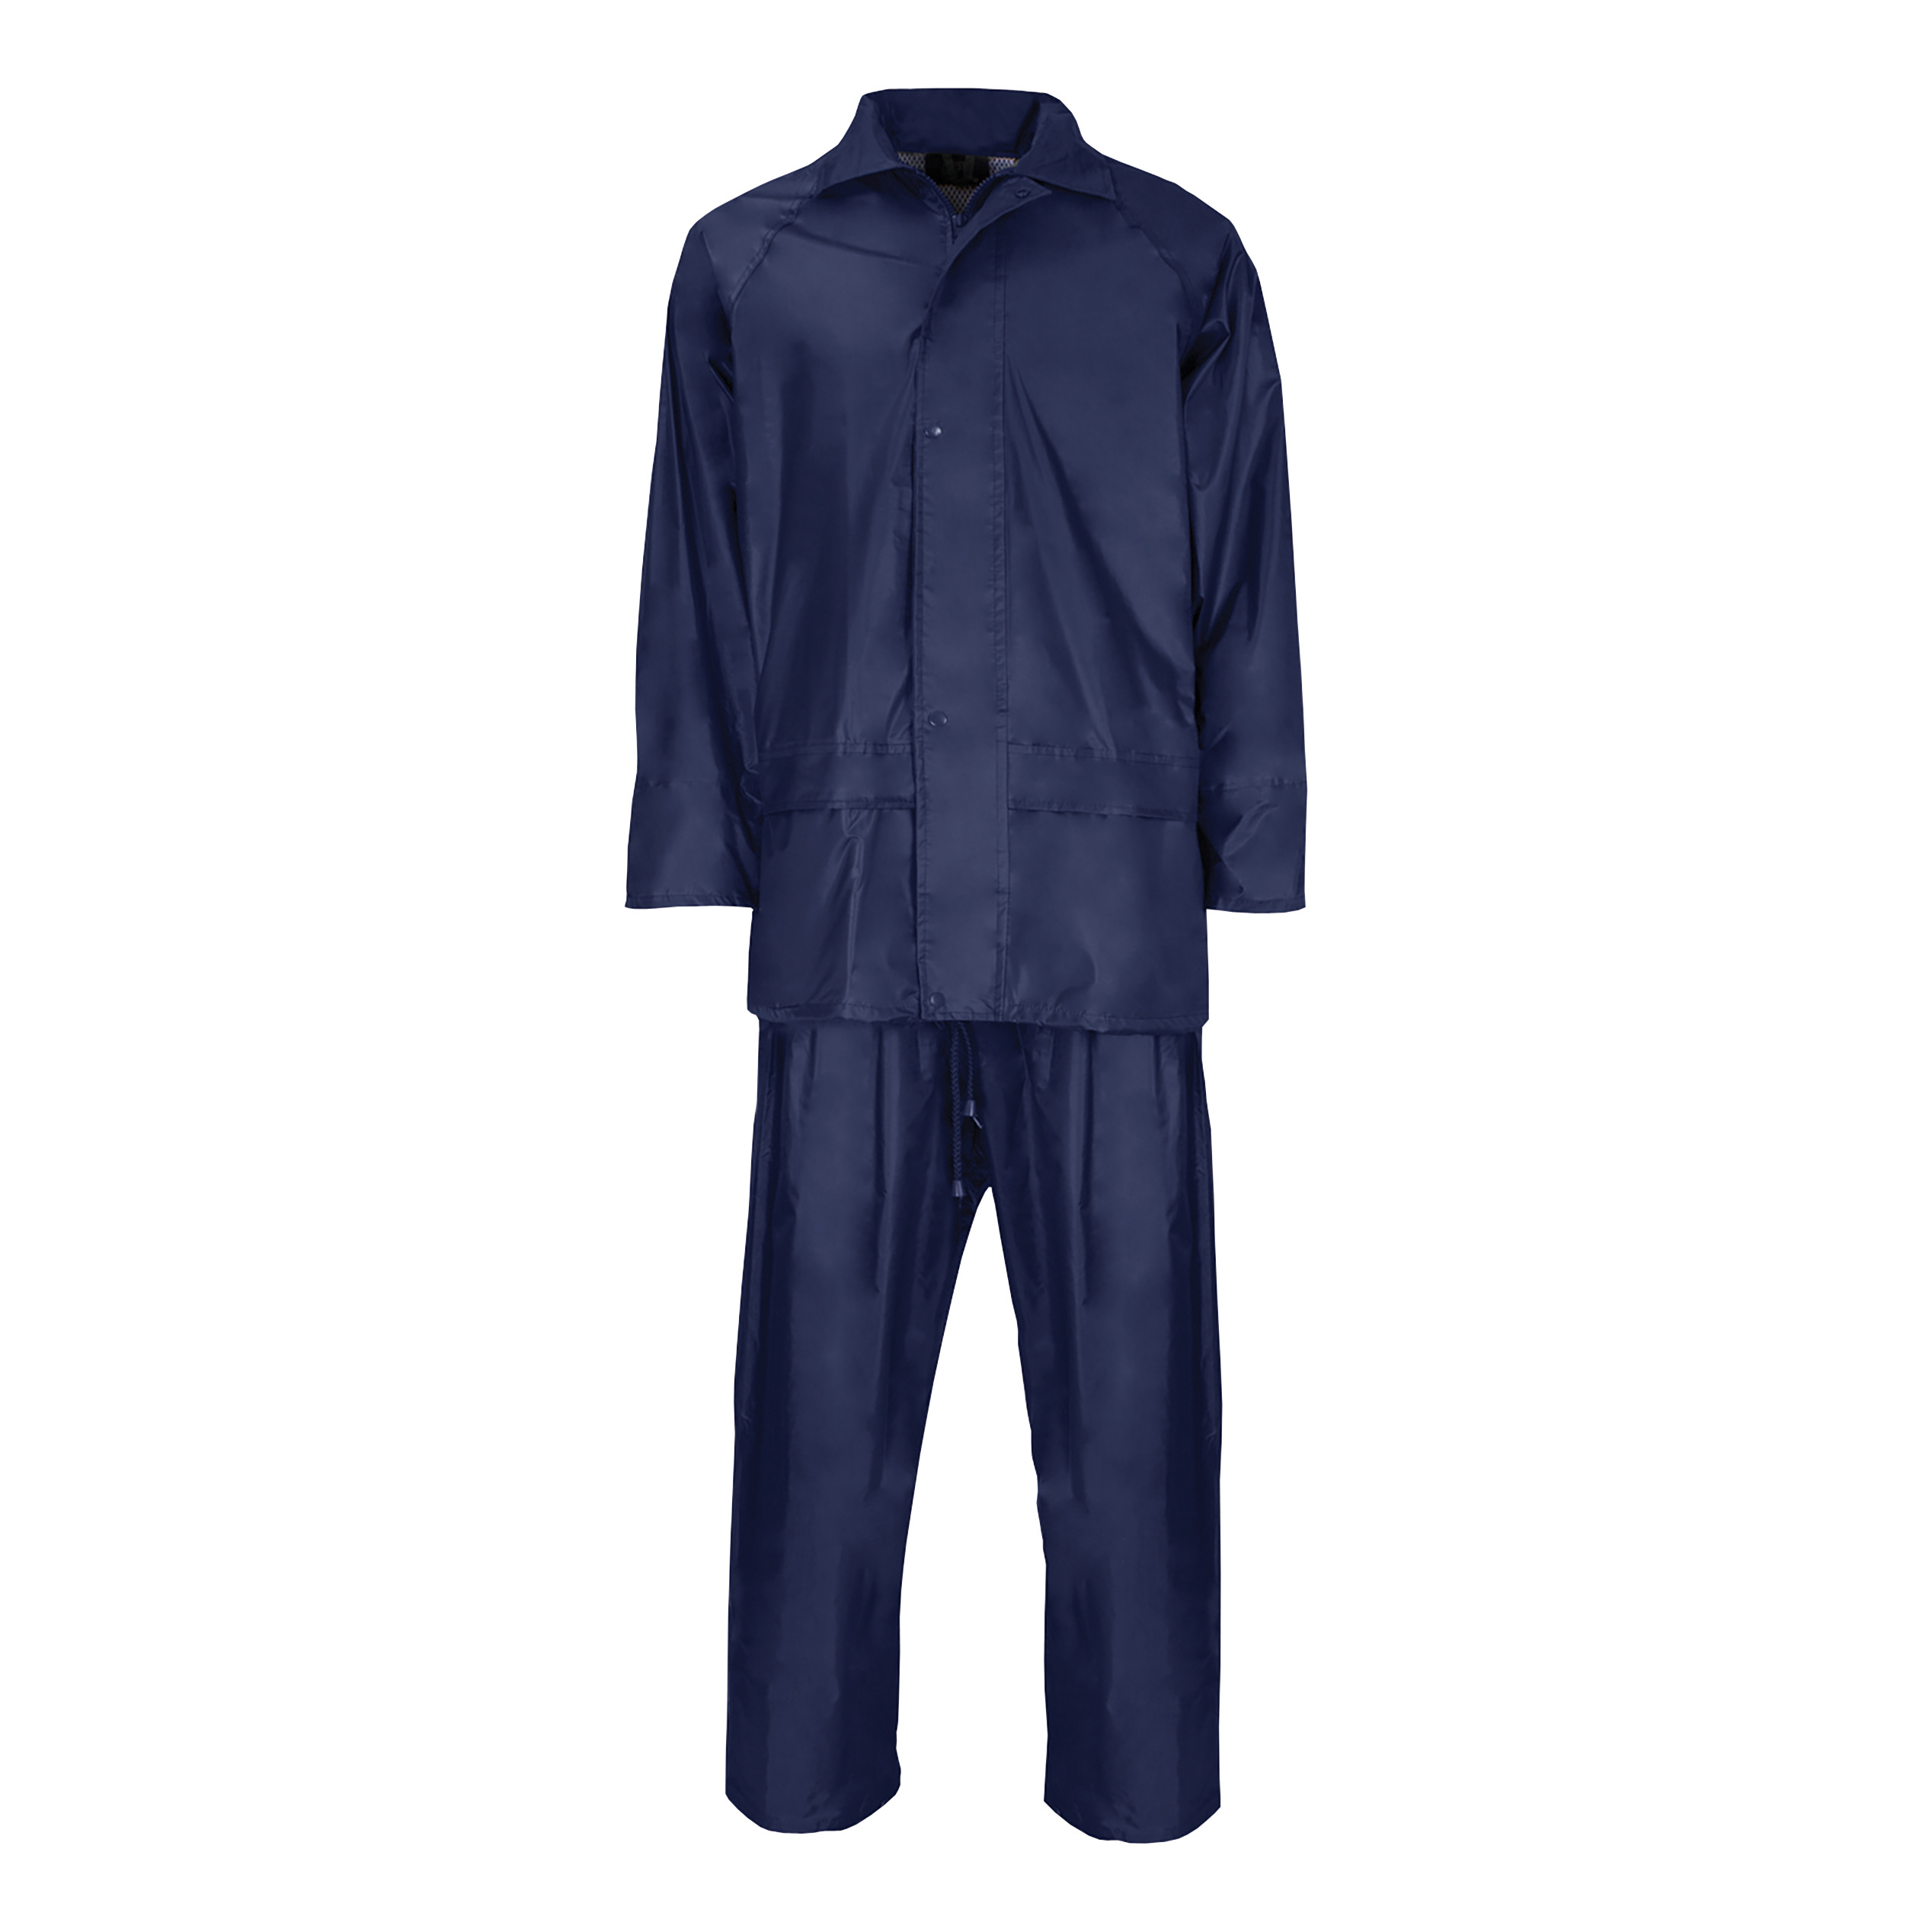 Weatherproof Rainsuit Polyester/PVC with Elasticated Waisted Trousers Medium Navy Ref NBDSNM *Approx 3 Day Leadtime*